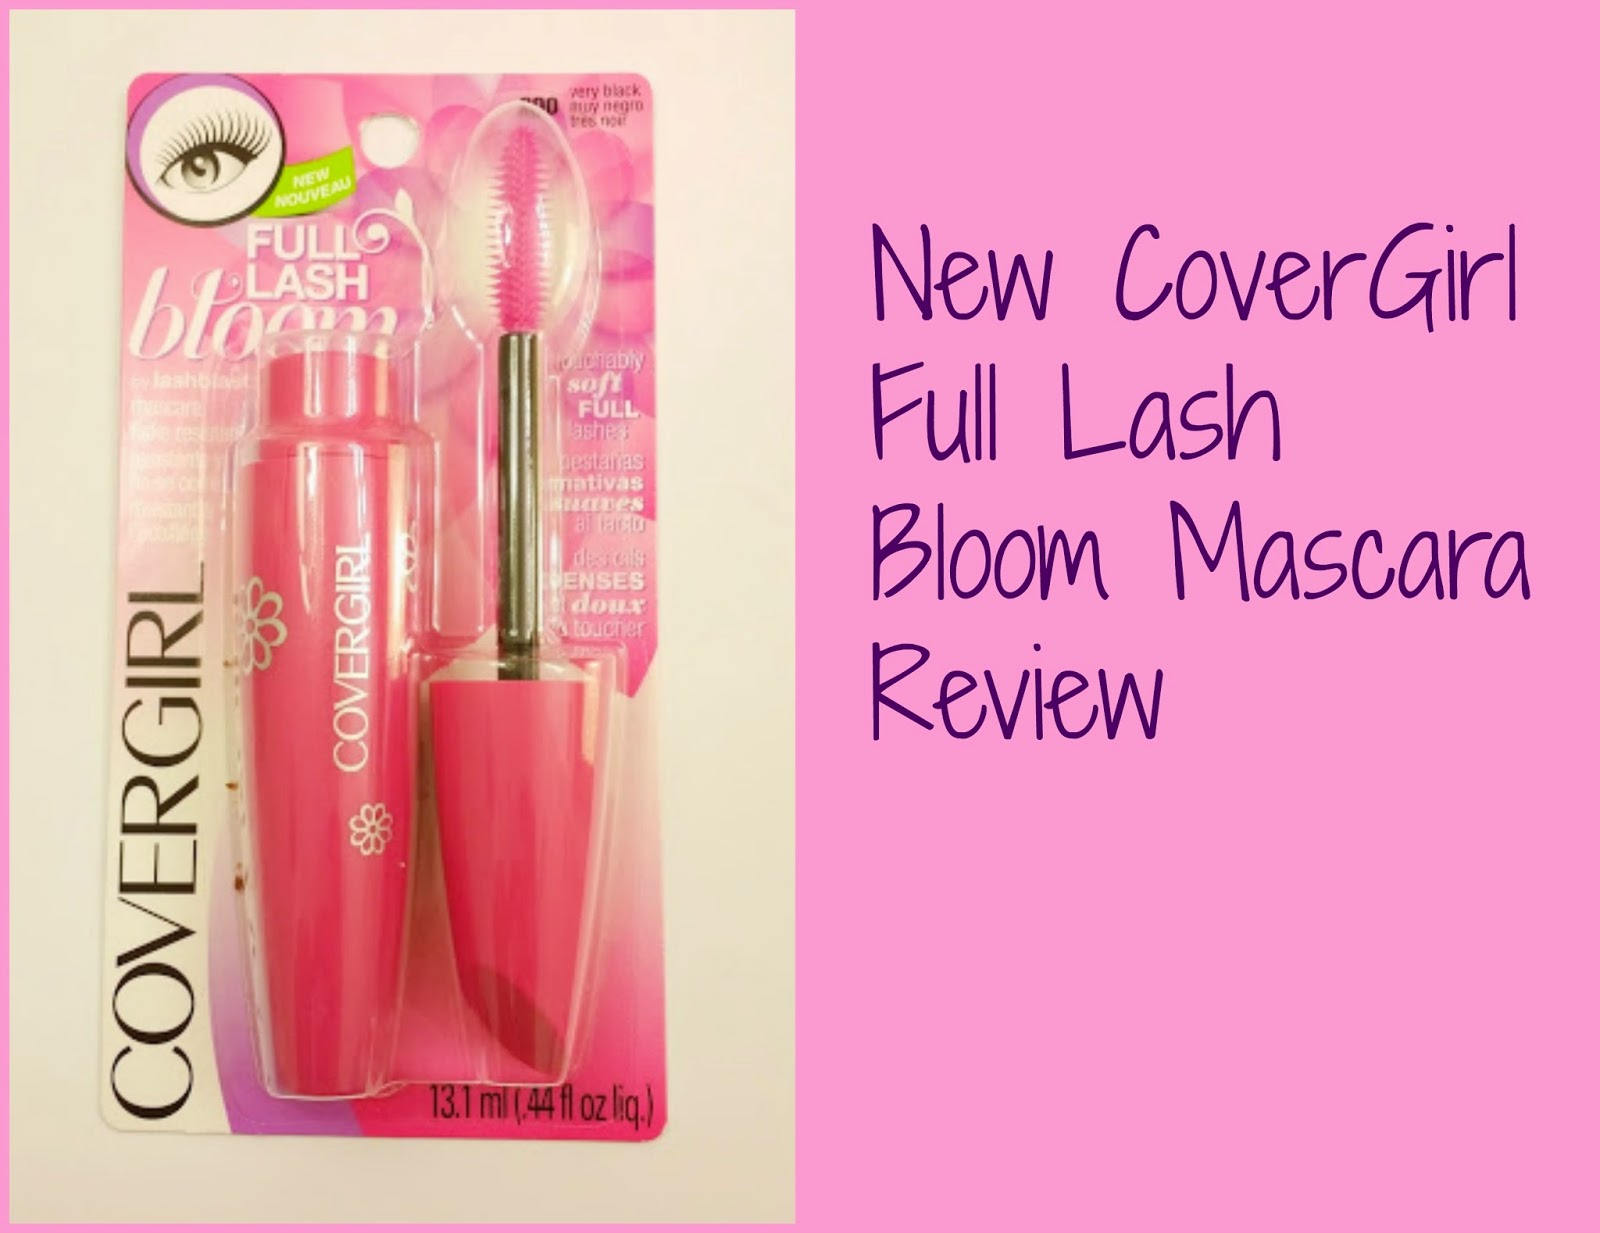 7518da2bd05 New CoverGirl Full Lash Bloom Mascara Review. Hello Beautiful Dolls! I  don't know where you dolls live but yesterday was nice and sunny people  weren't ...